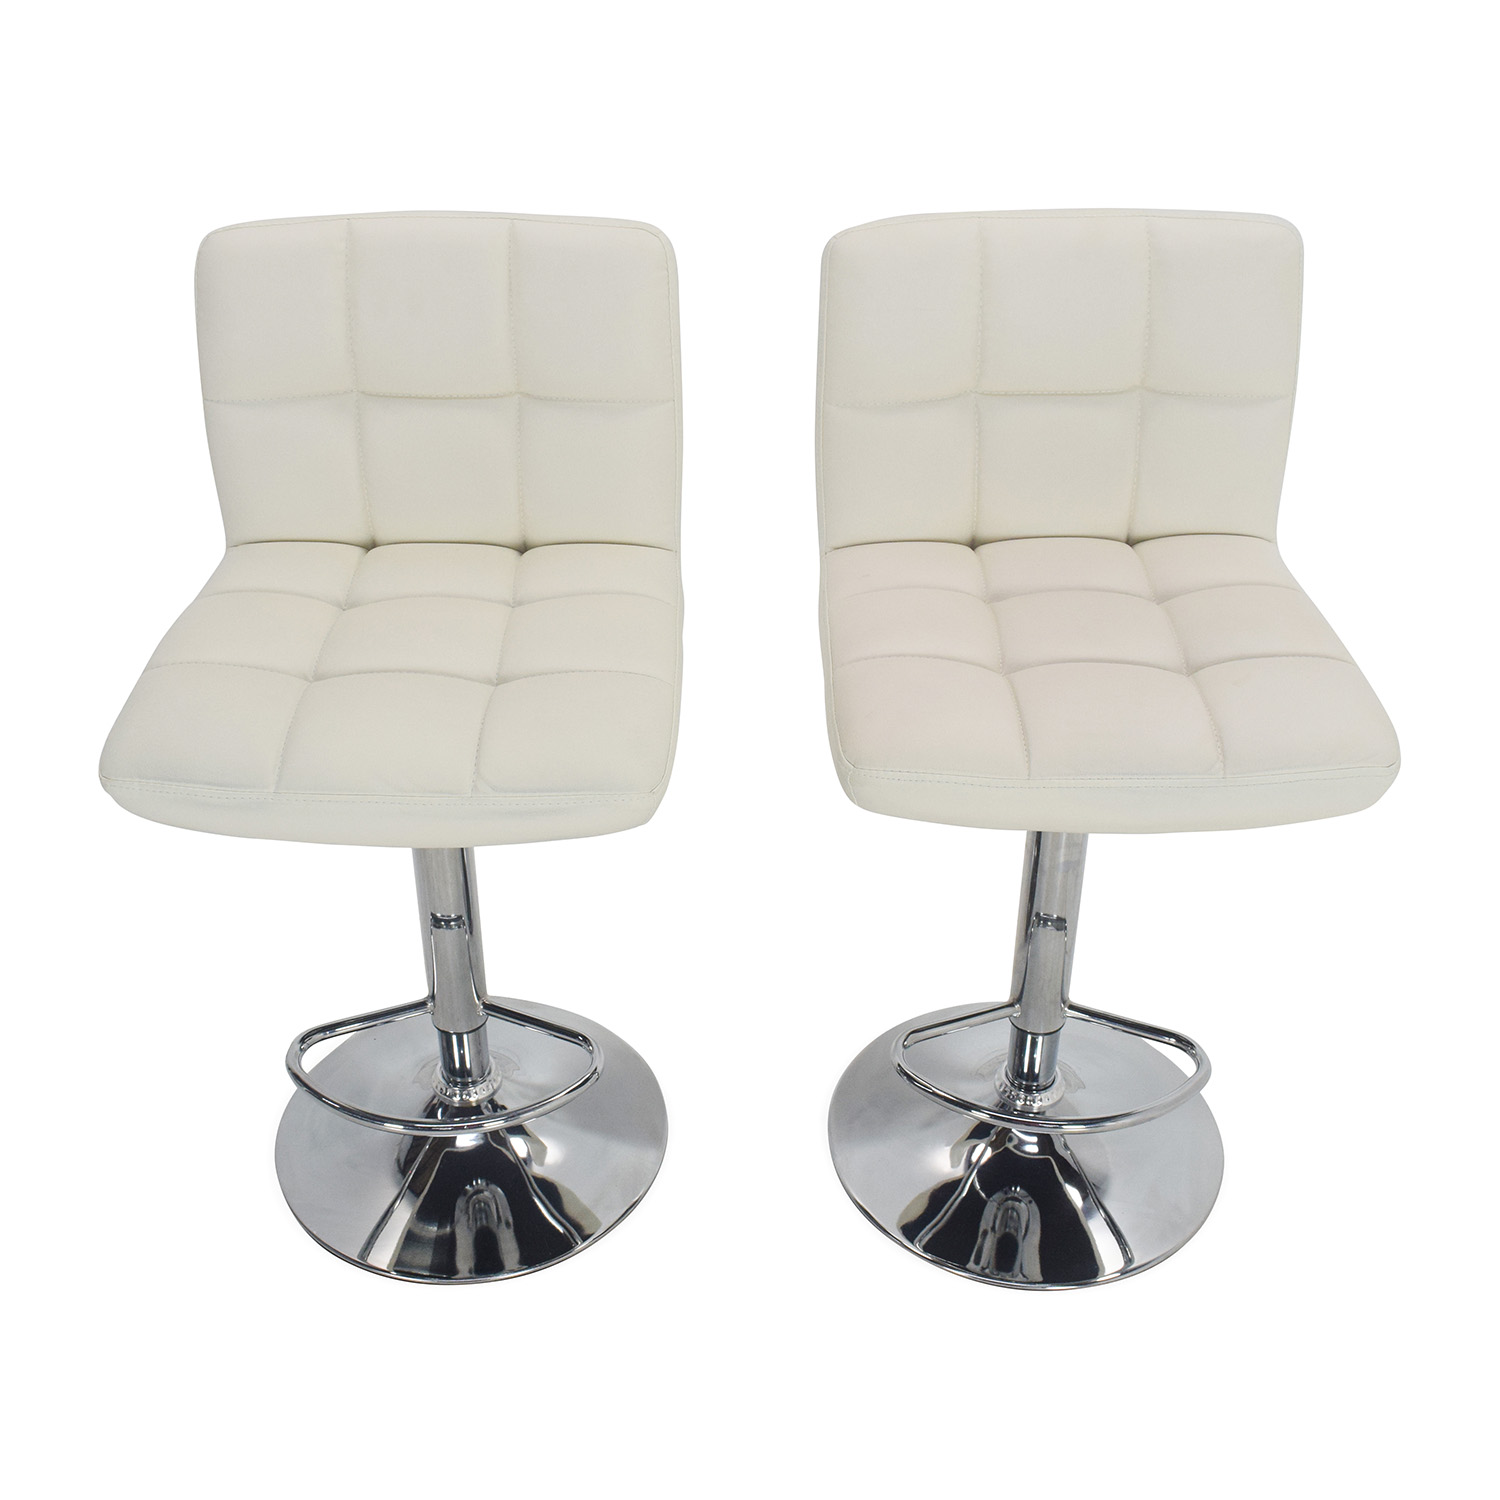 Roundhill Furniture White Bar Stools Roundhill Furniture